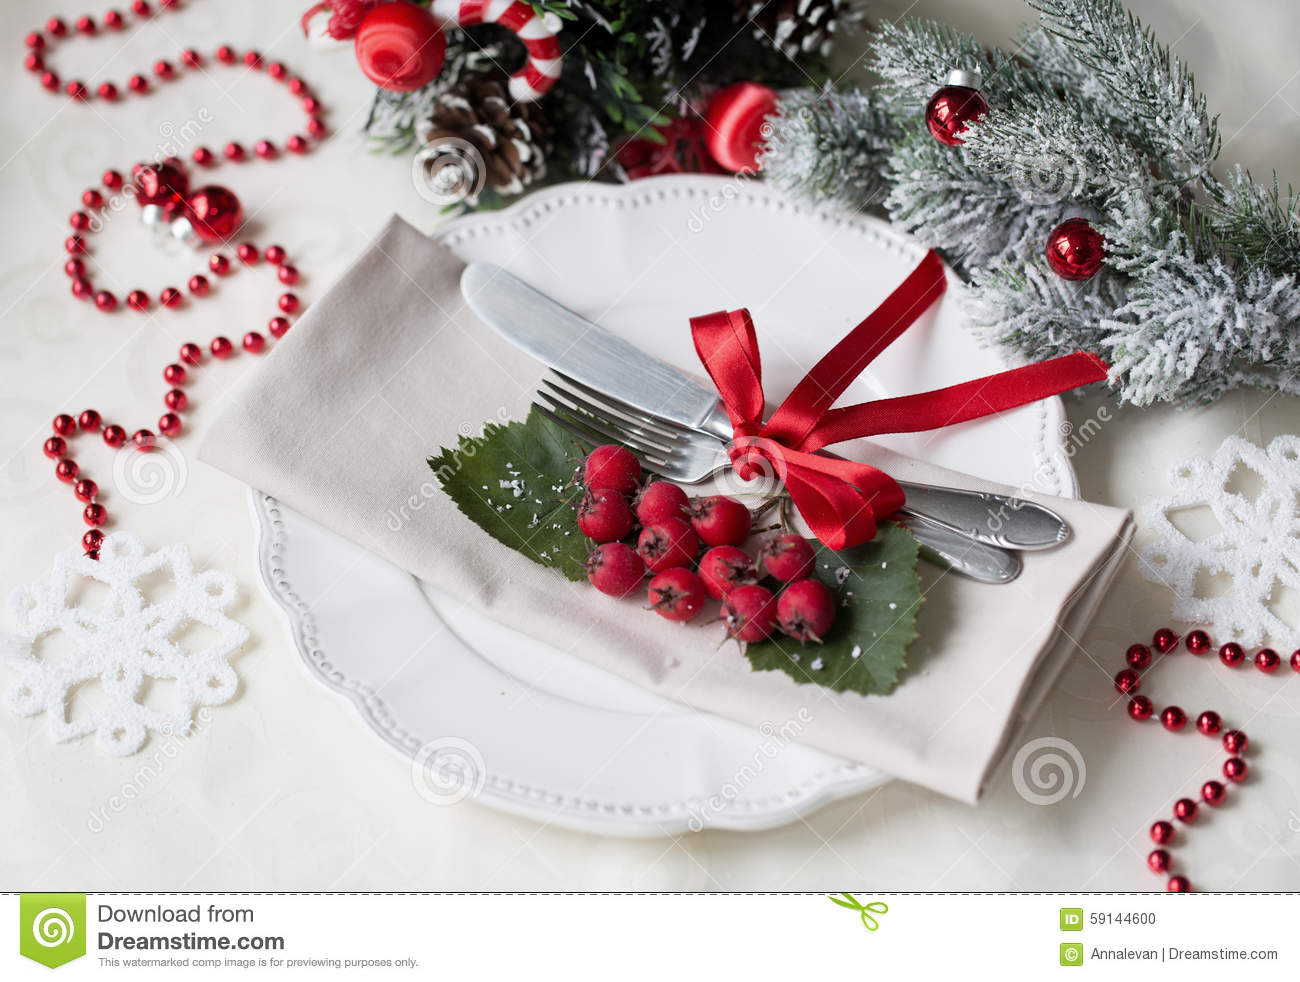 christmas and new year holiday table setting celebration place setting for christmas dinner holiday decorations